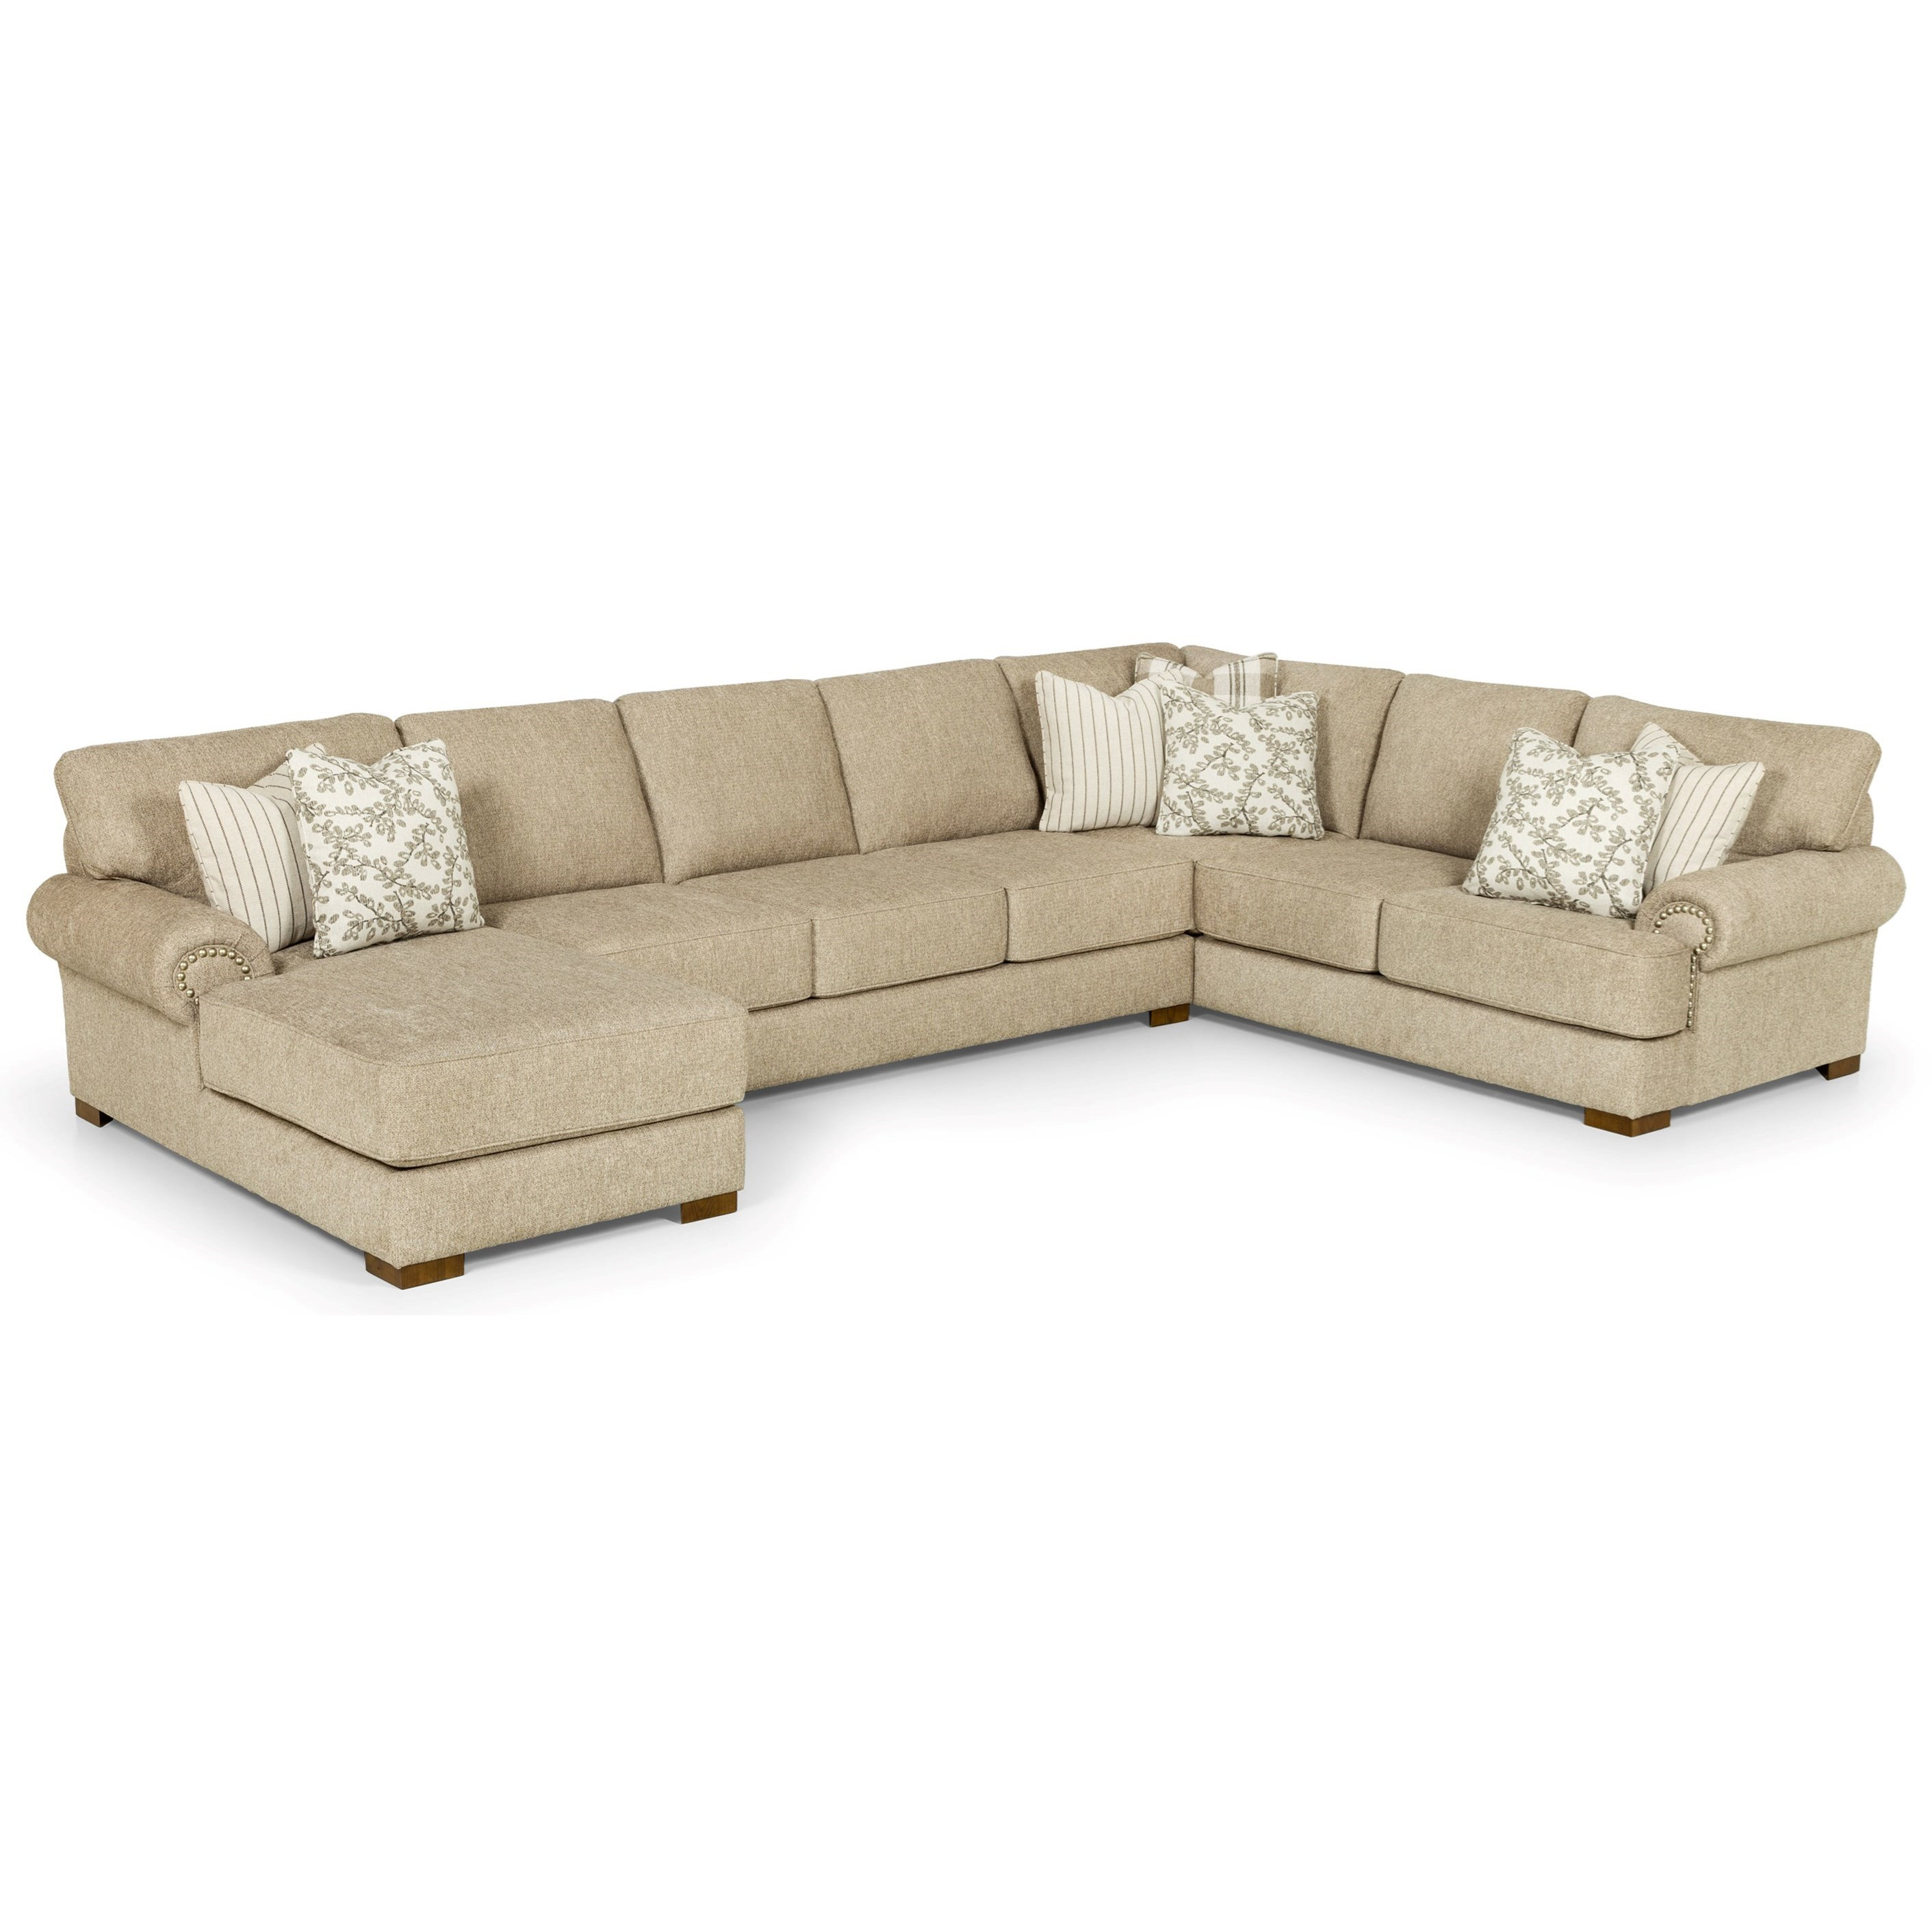 290 6-Seat Sectional Sofa w/ LAF Chaise by Stanton at Wilson's Furniture